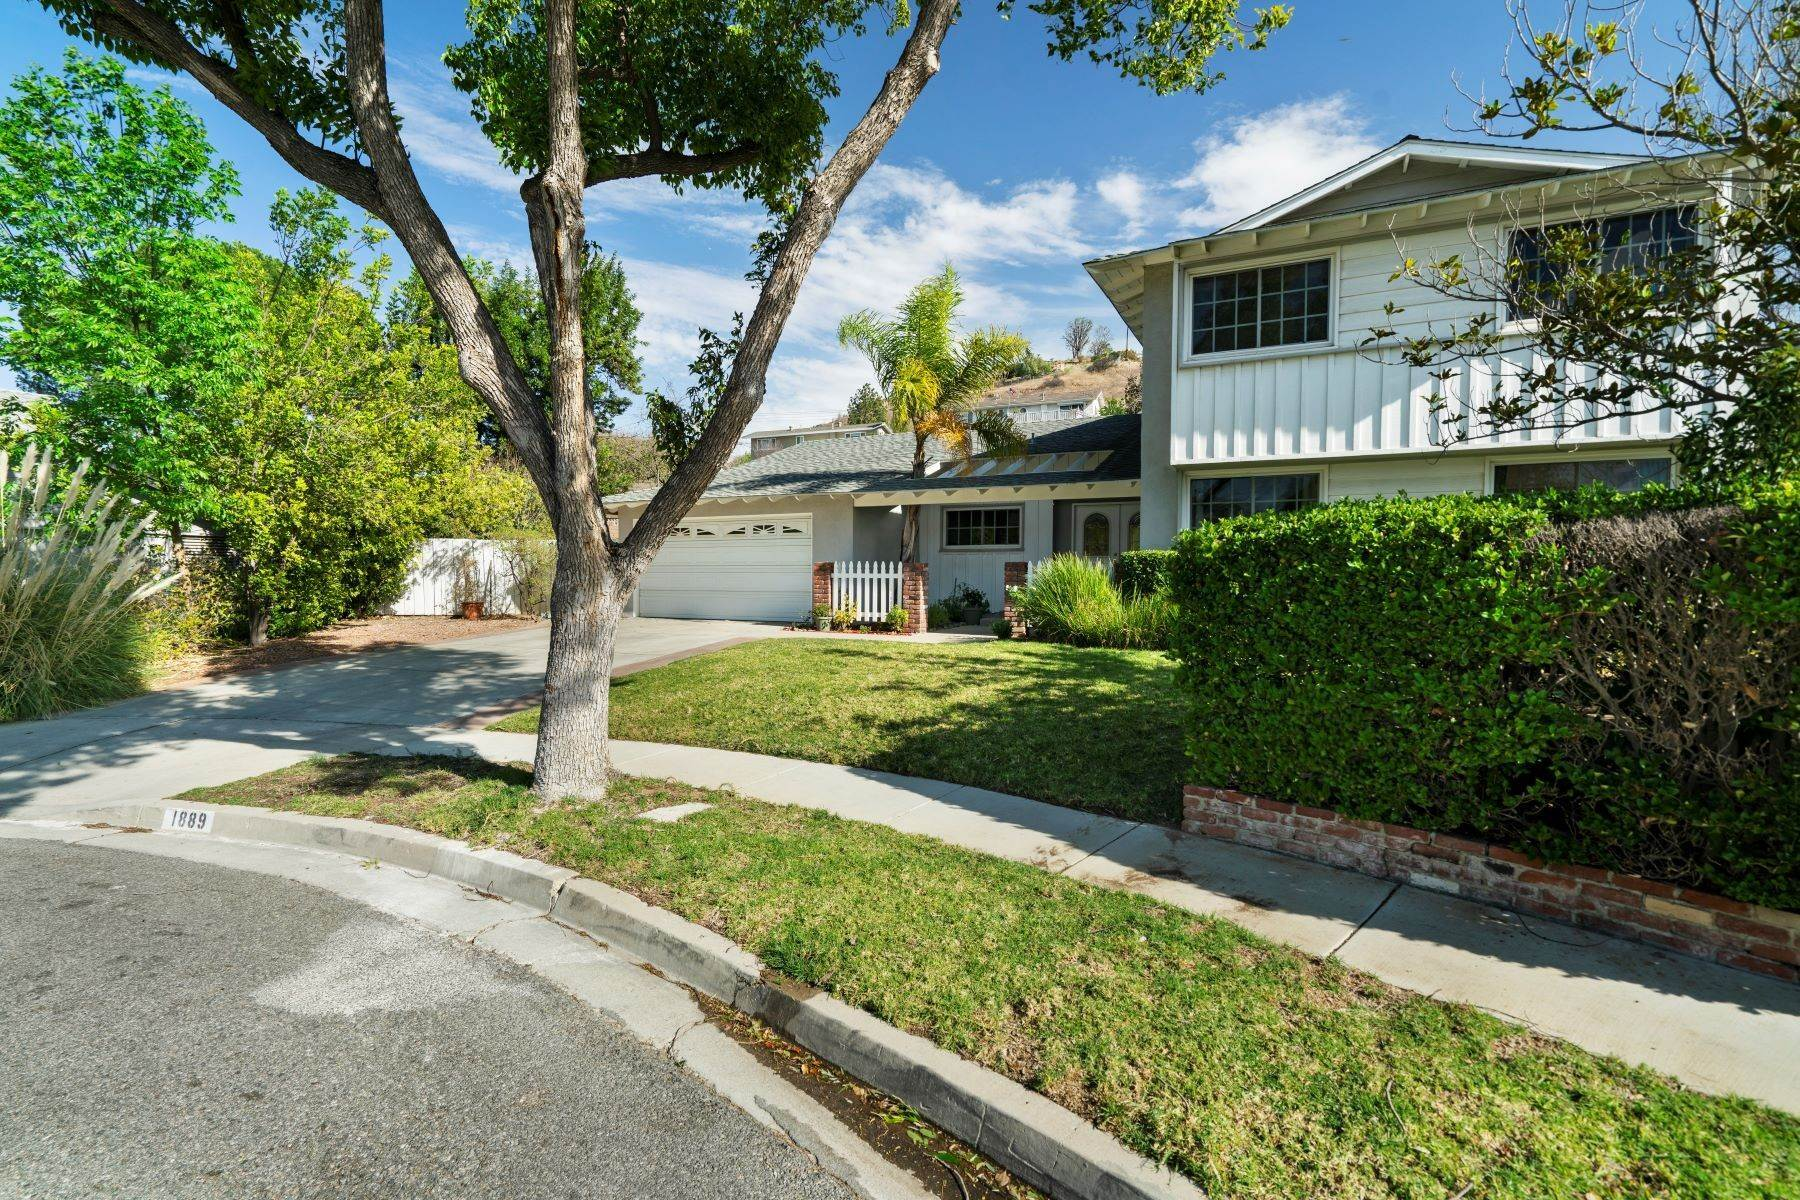 Single Family Homes for Sale at Fabulously Spacious 5 Bedroom Home 1889 Brian Court Thousand Oaks, California 91362 United States